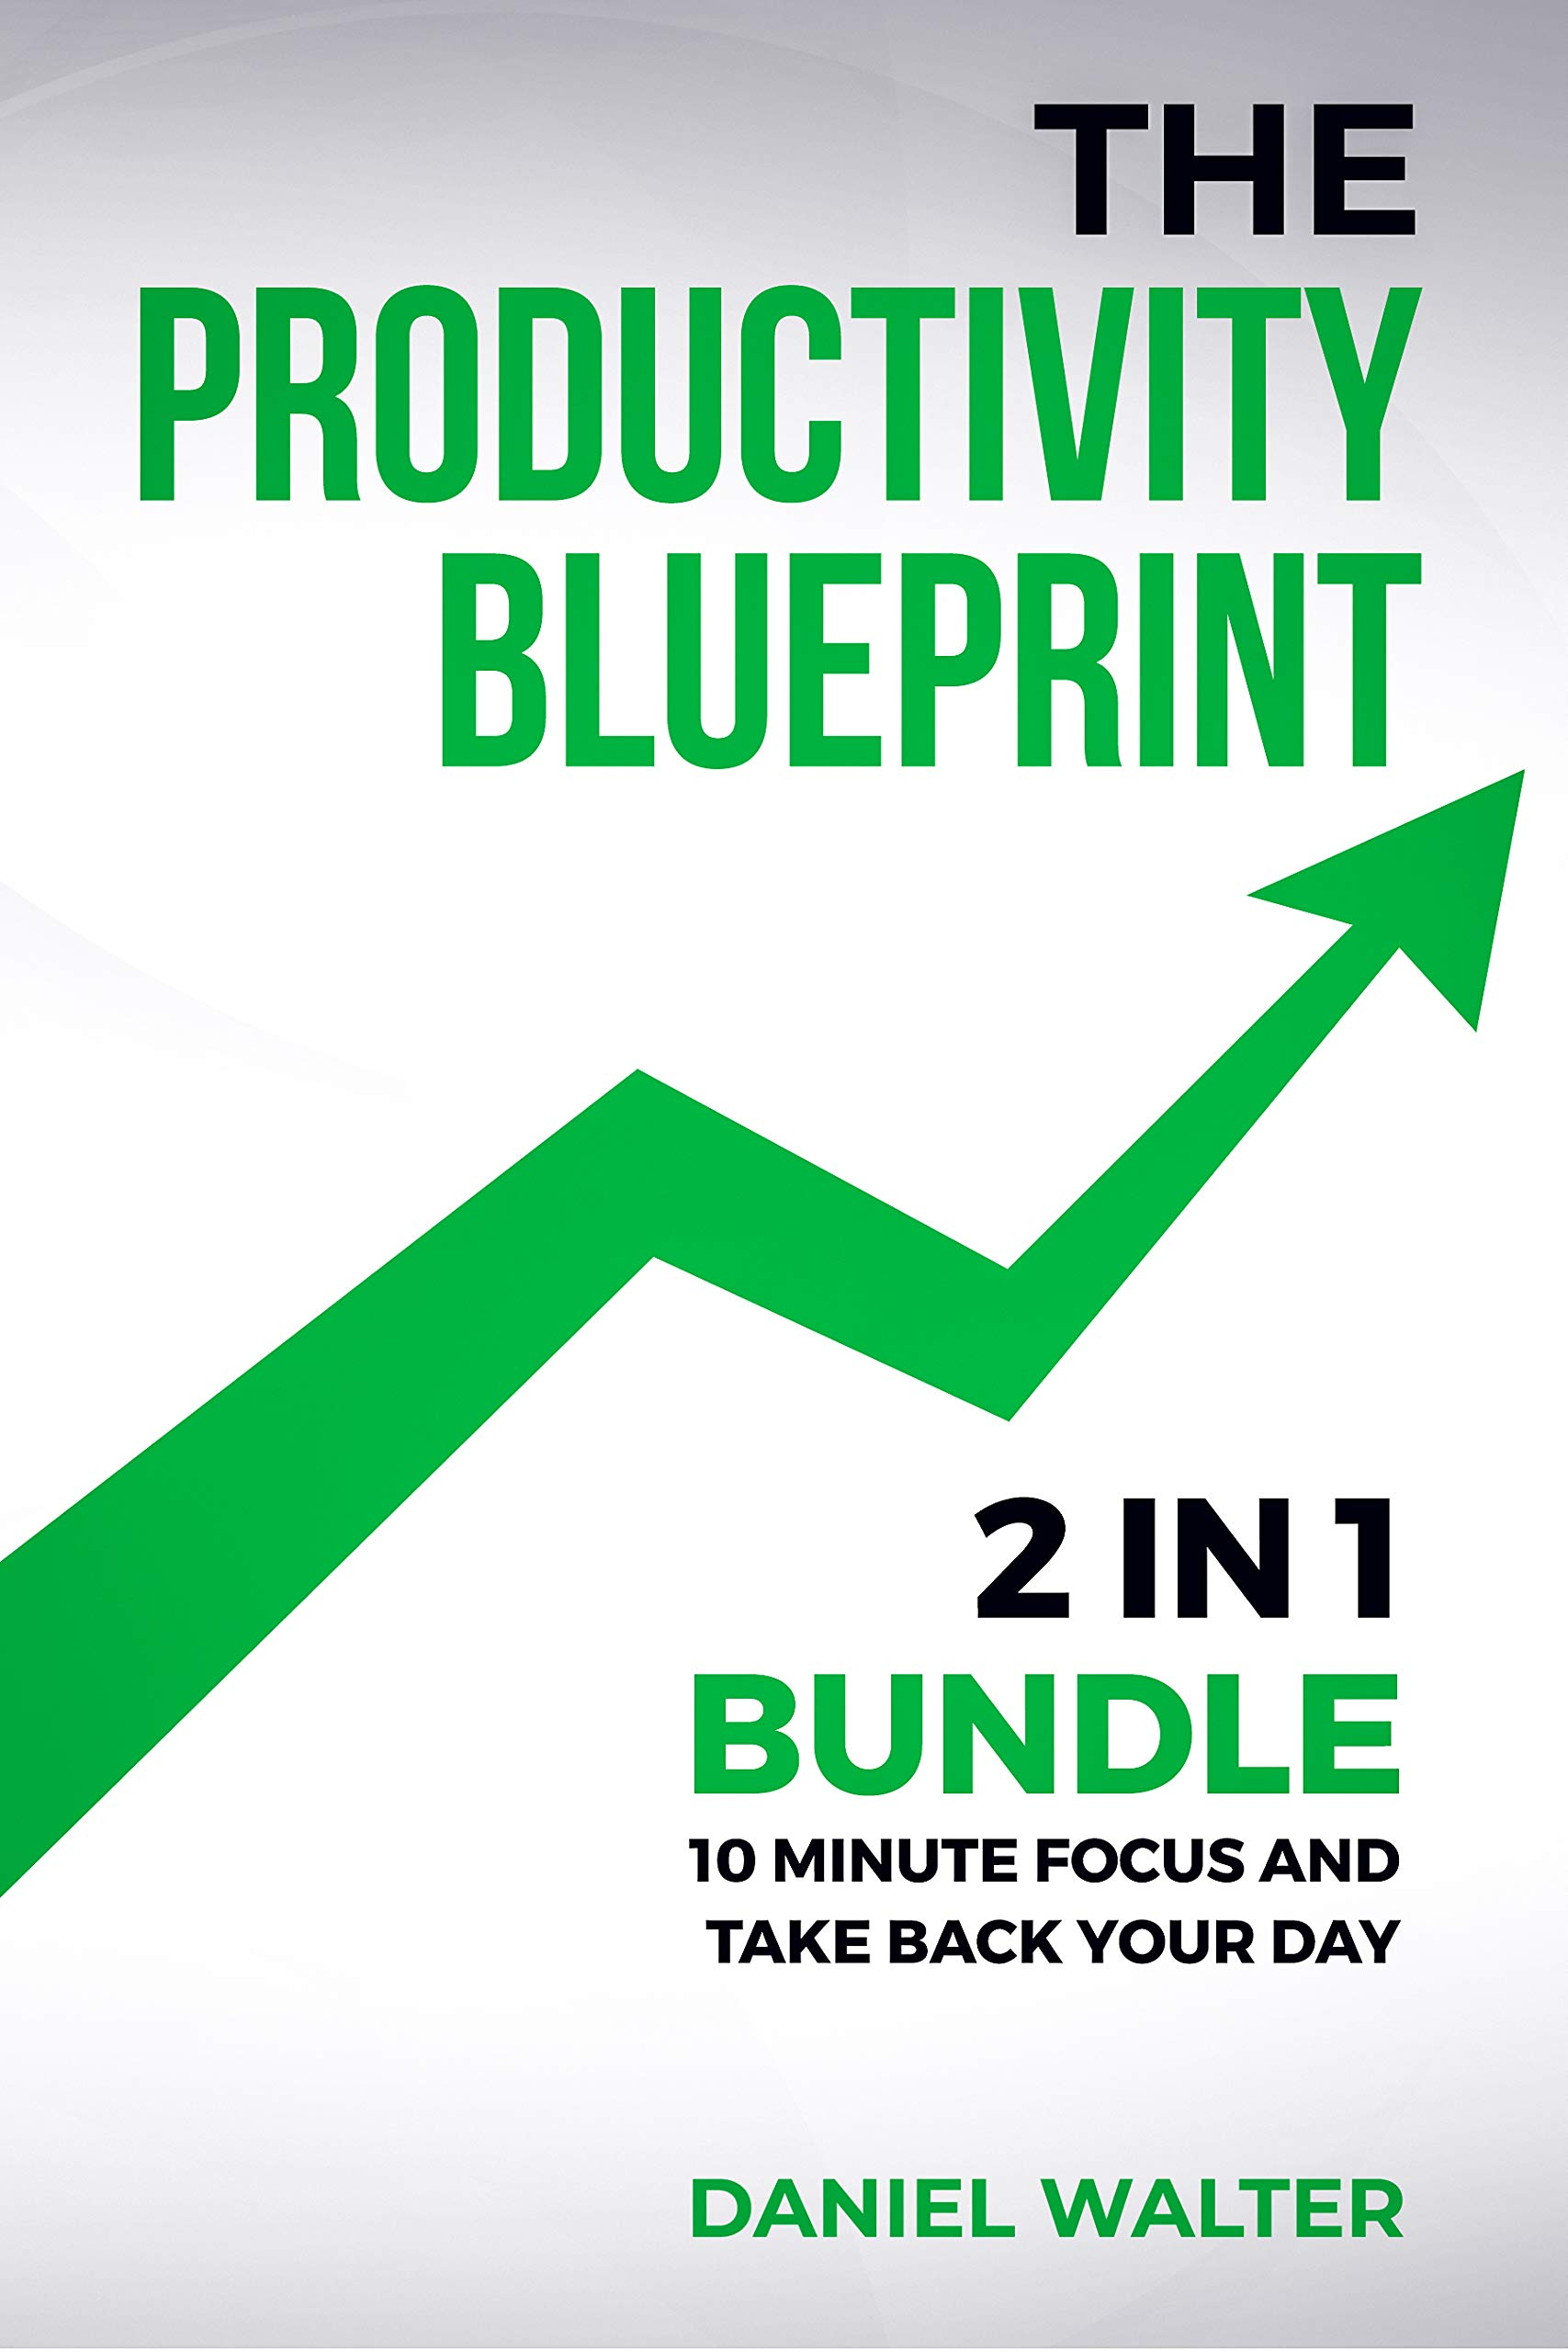 Image OfThe Productivity Blueprint: 2 In 1 Bundle: 10 Minute Focus And Take Back Your Day